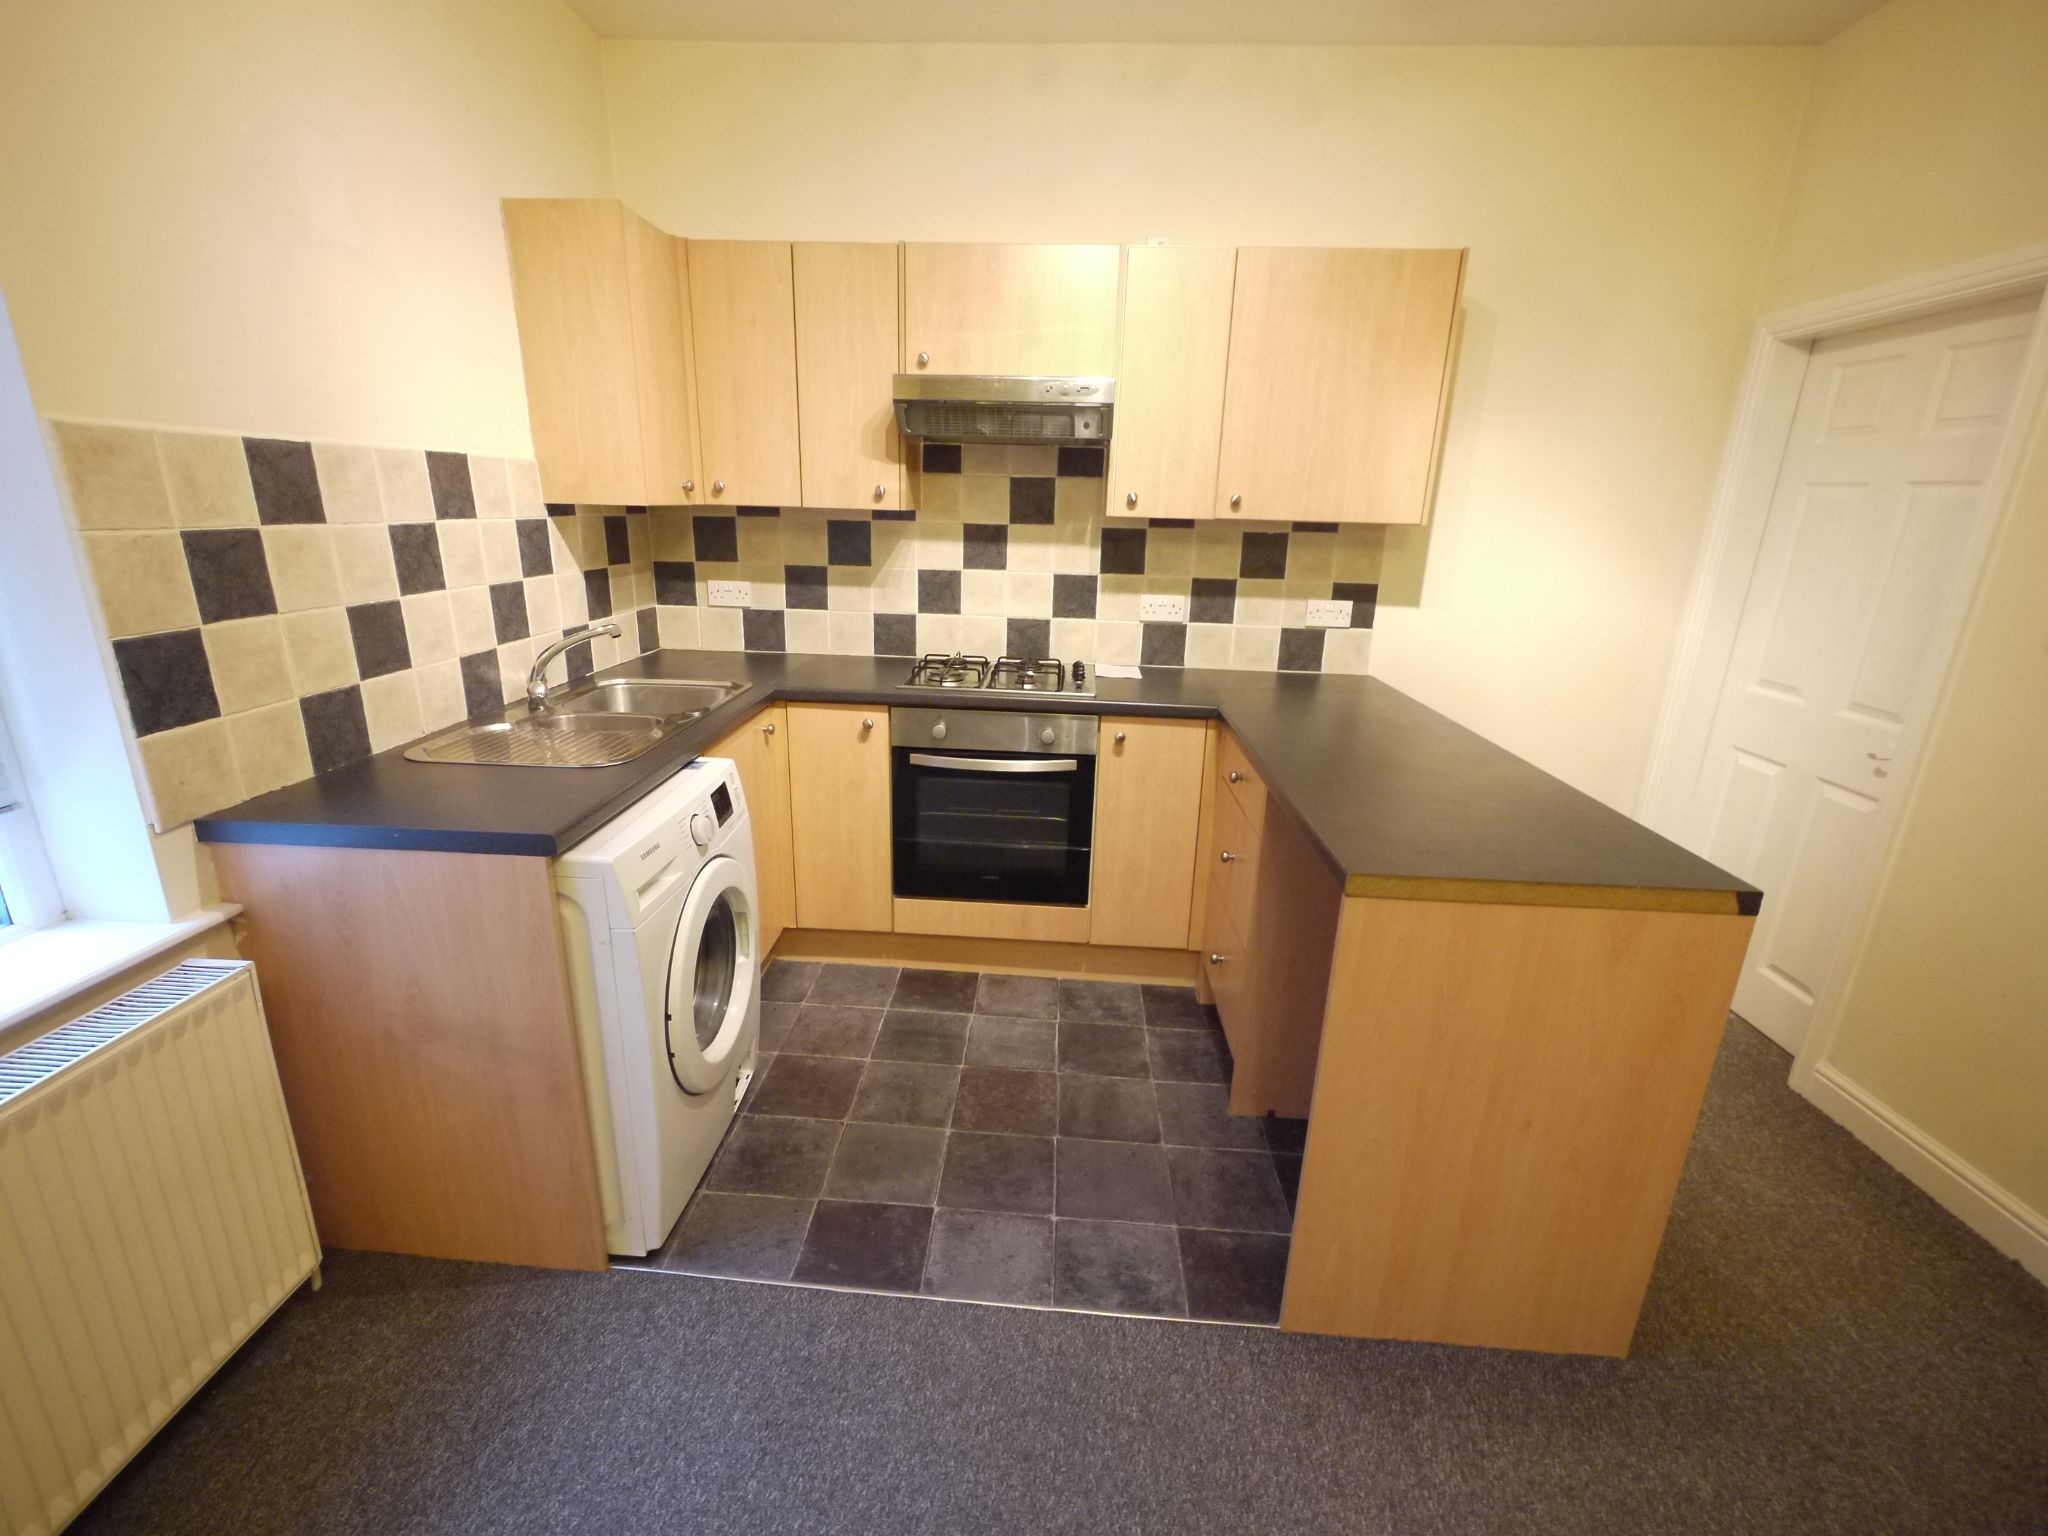 2 bedroom mid terraced house SSTC in Brighouse - Photograph 3.